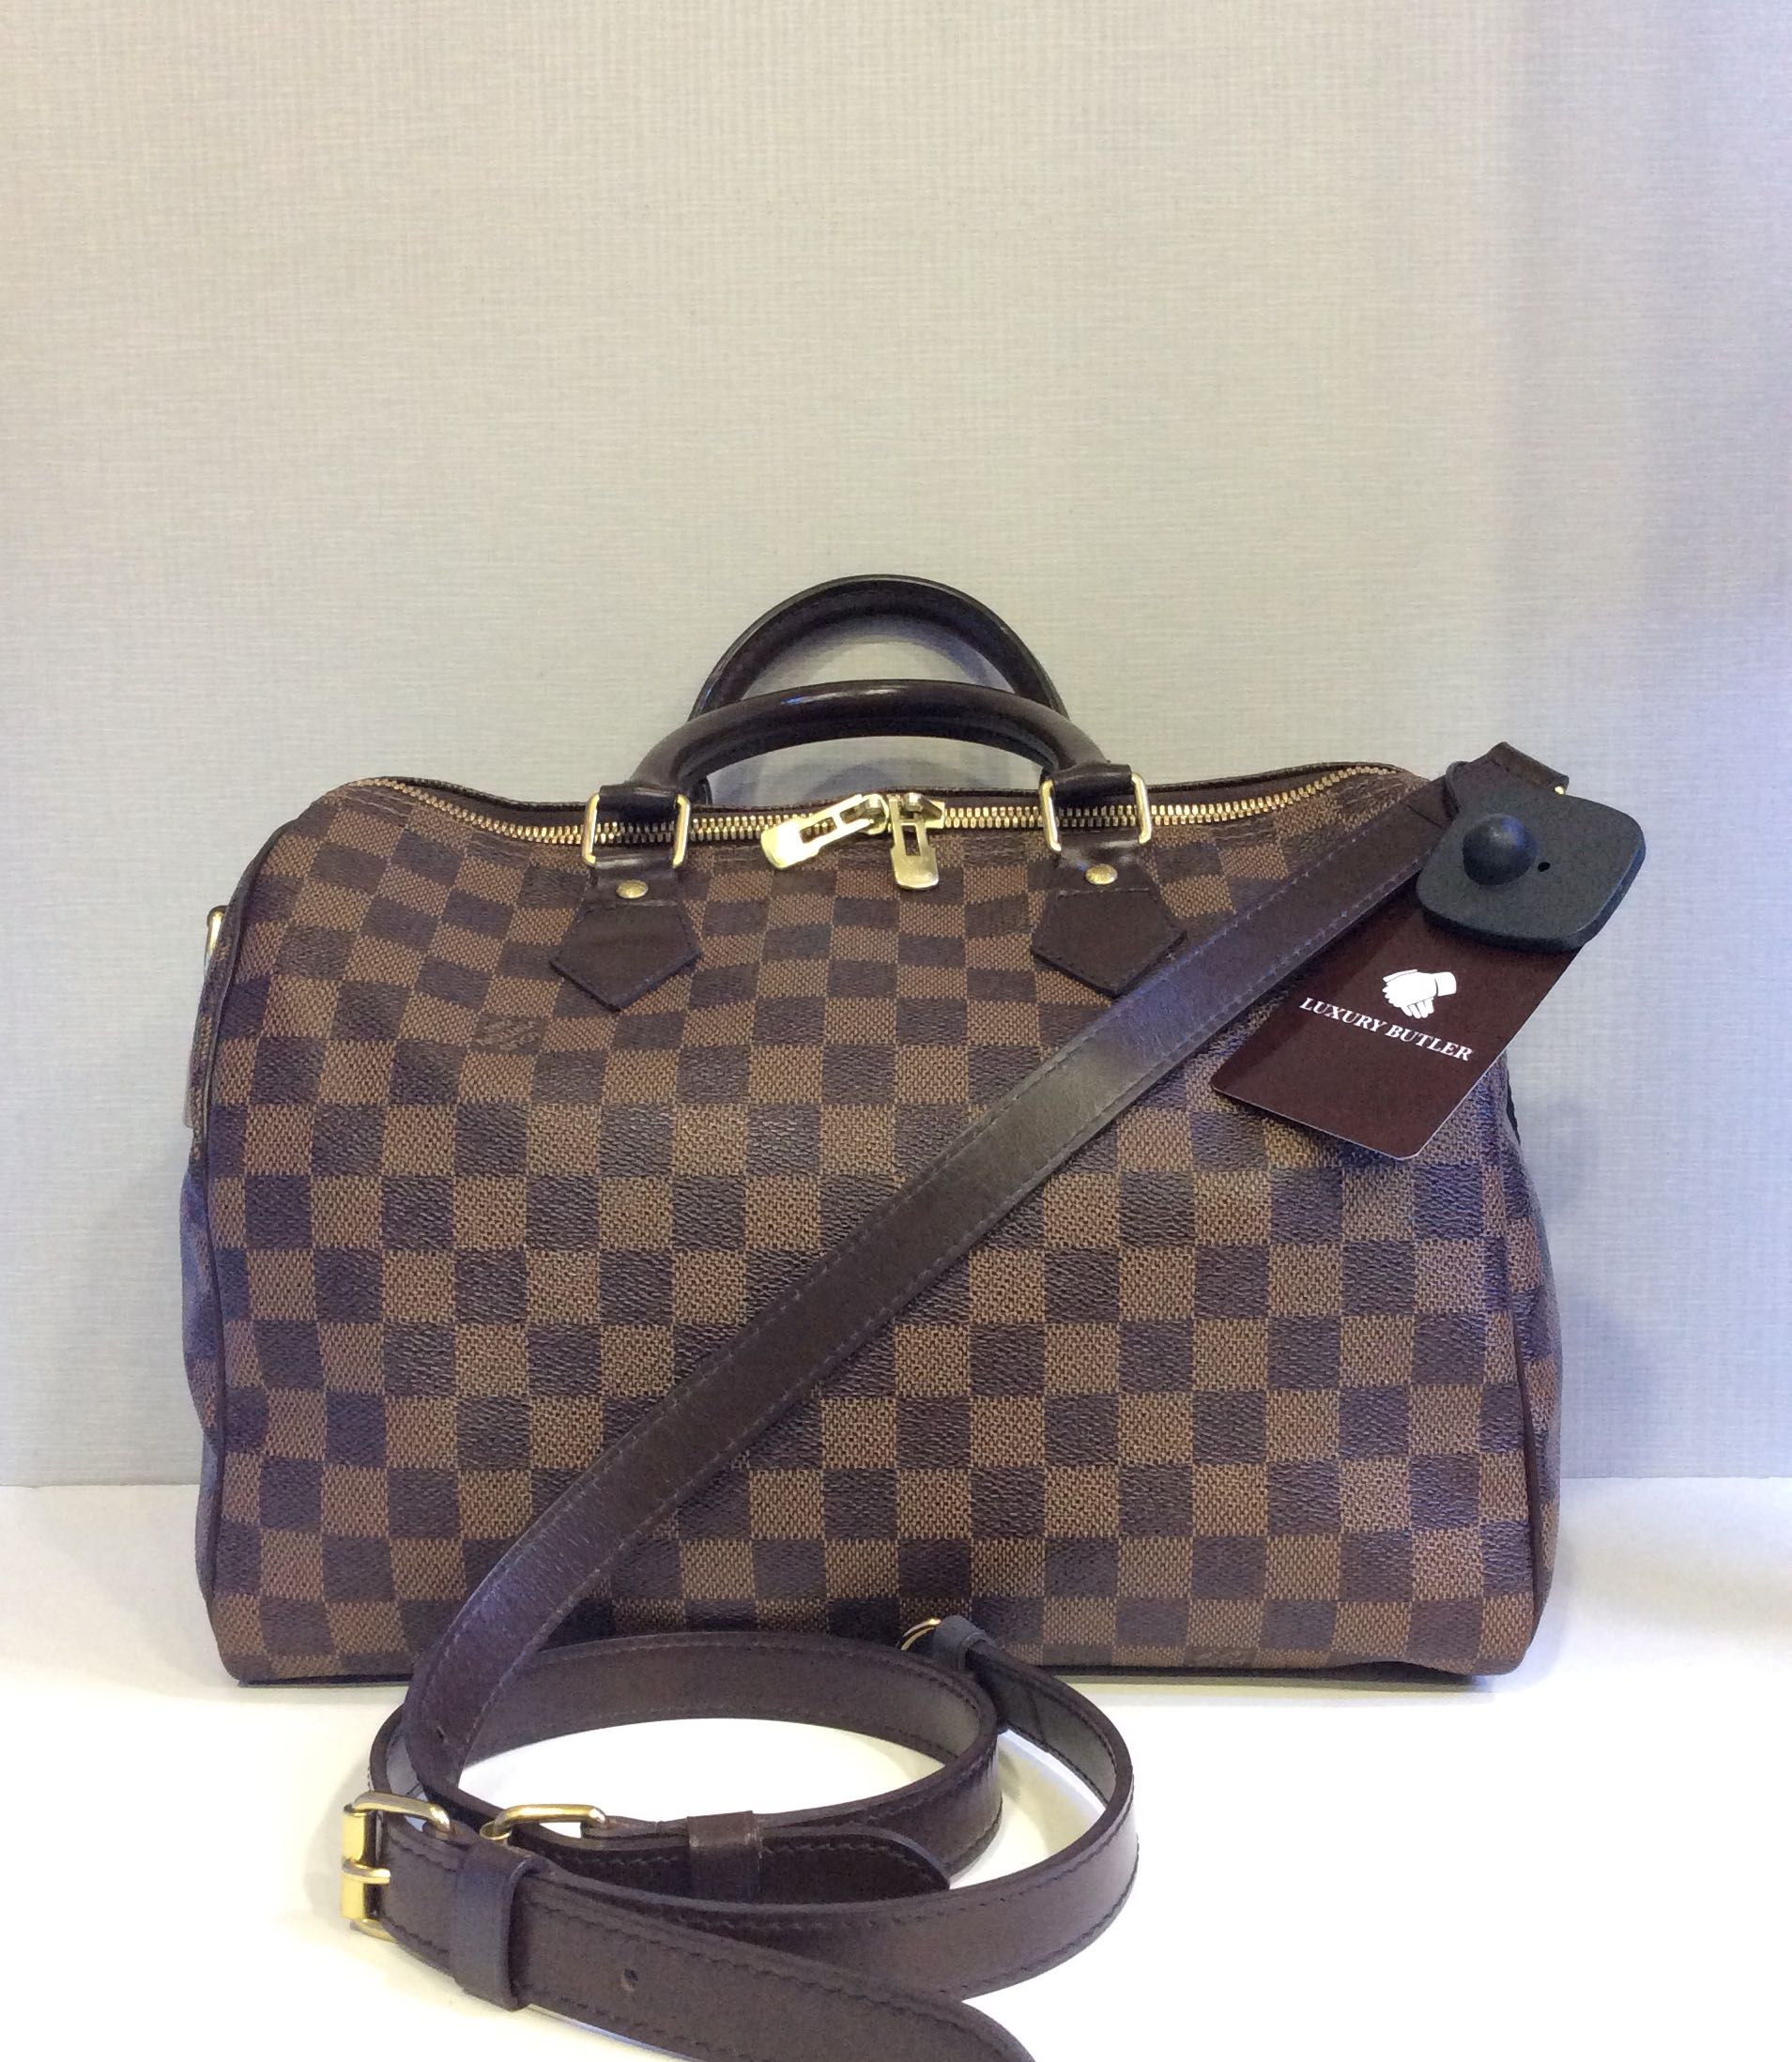 c78f0f6e4293 preloved lv bag sale price negotiable luxury bags wallets handbags ...